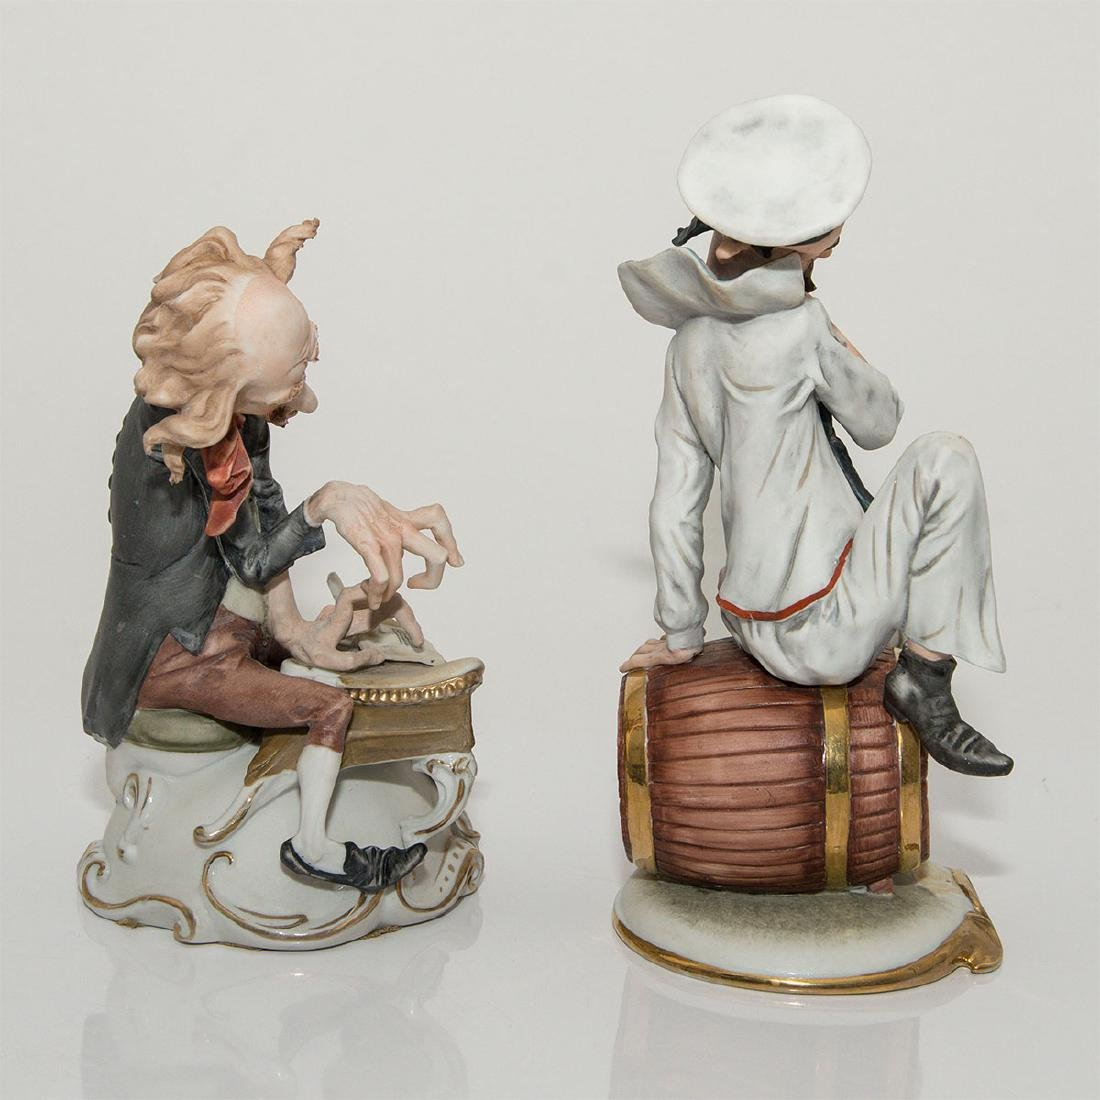 GROUP OF 2 CARICATURE PORCELAIN FIGURINES - 4